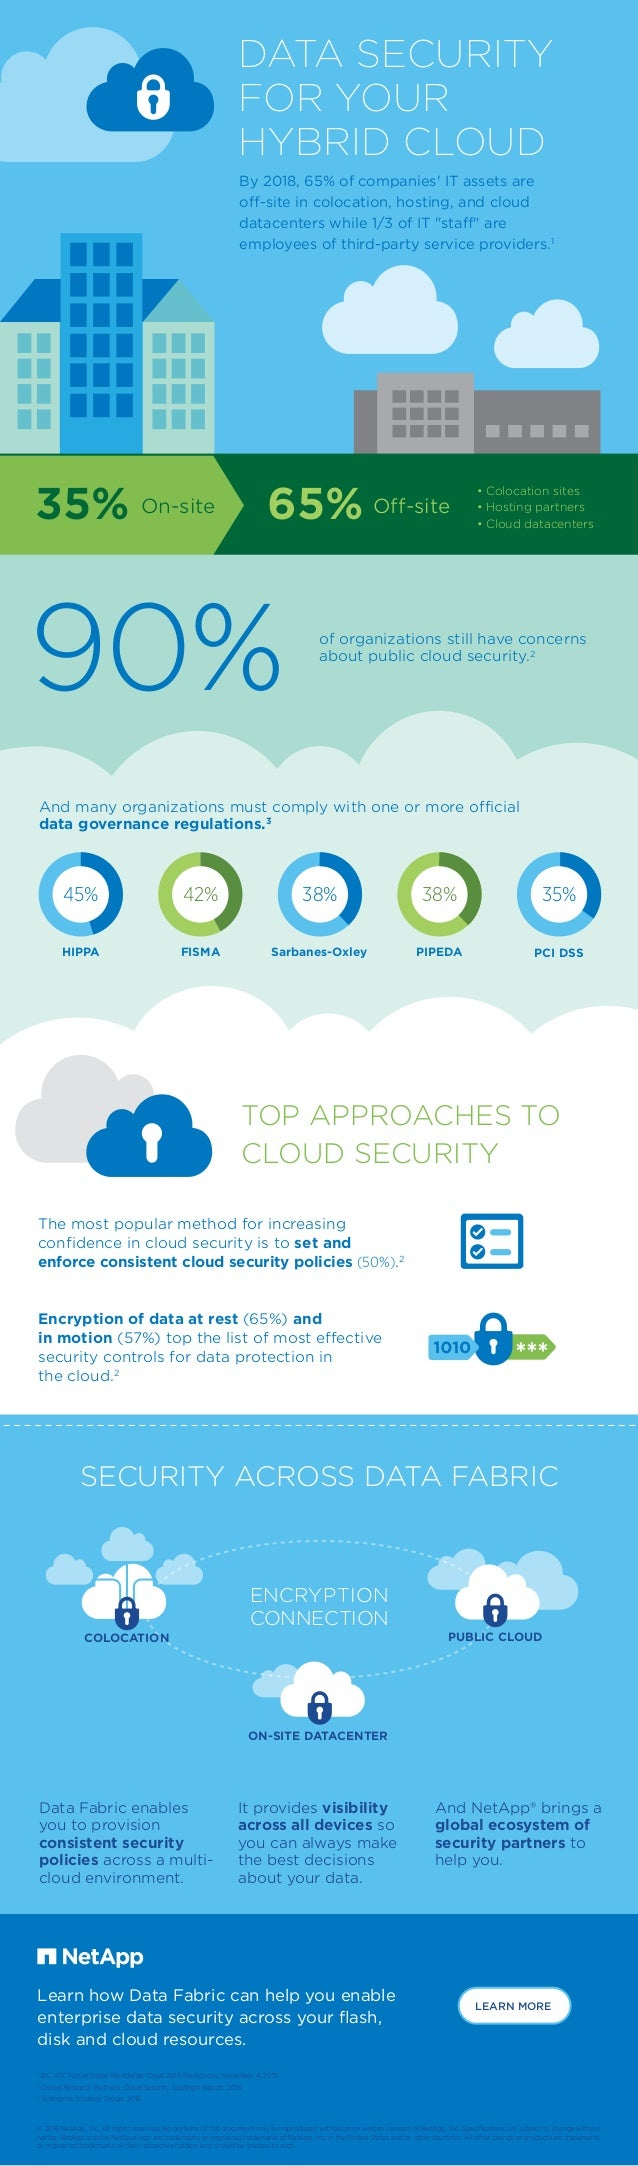 DATA SECURITY FOR YOUR HYBRID CLOUD By 2018, 65% of companies' IT assets are off-site in colocation, hosting, and cloud da...